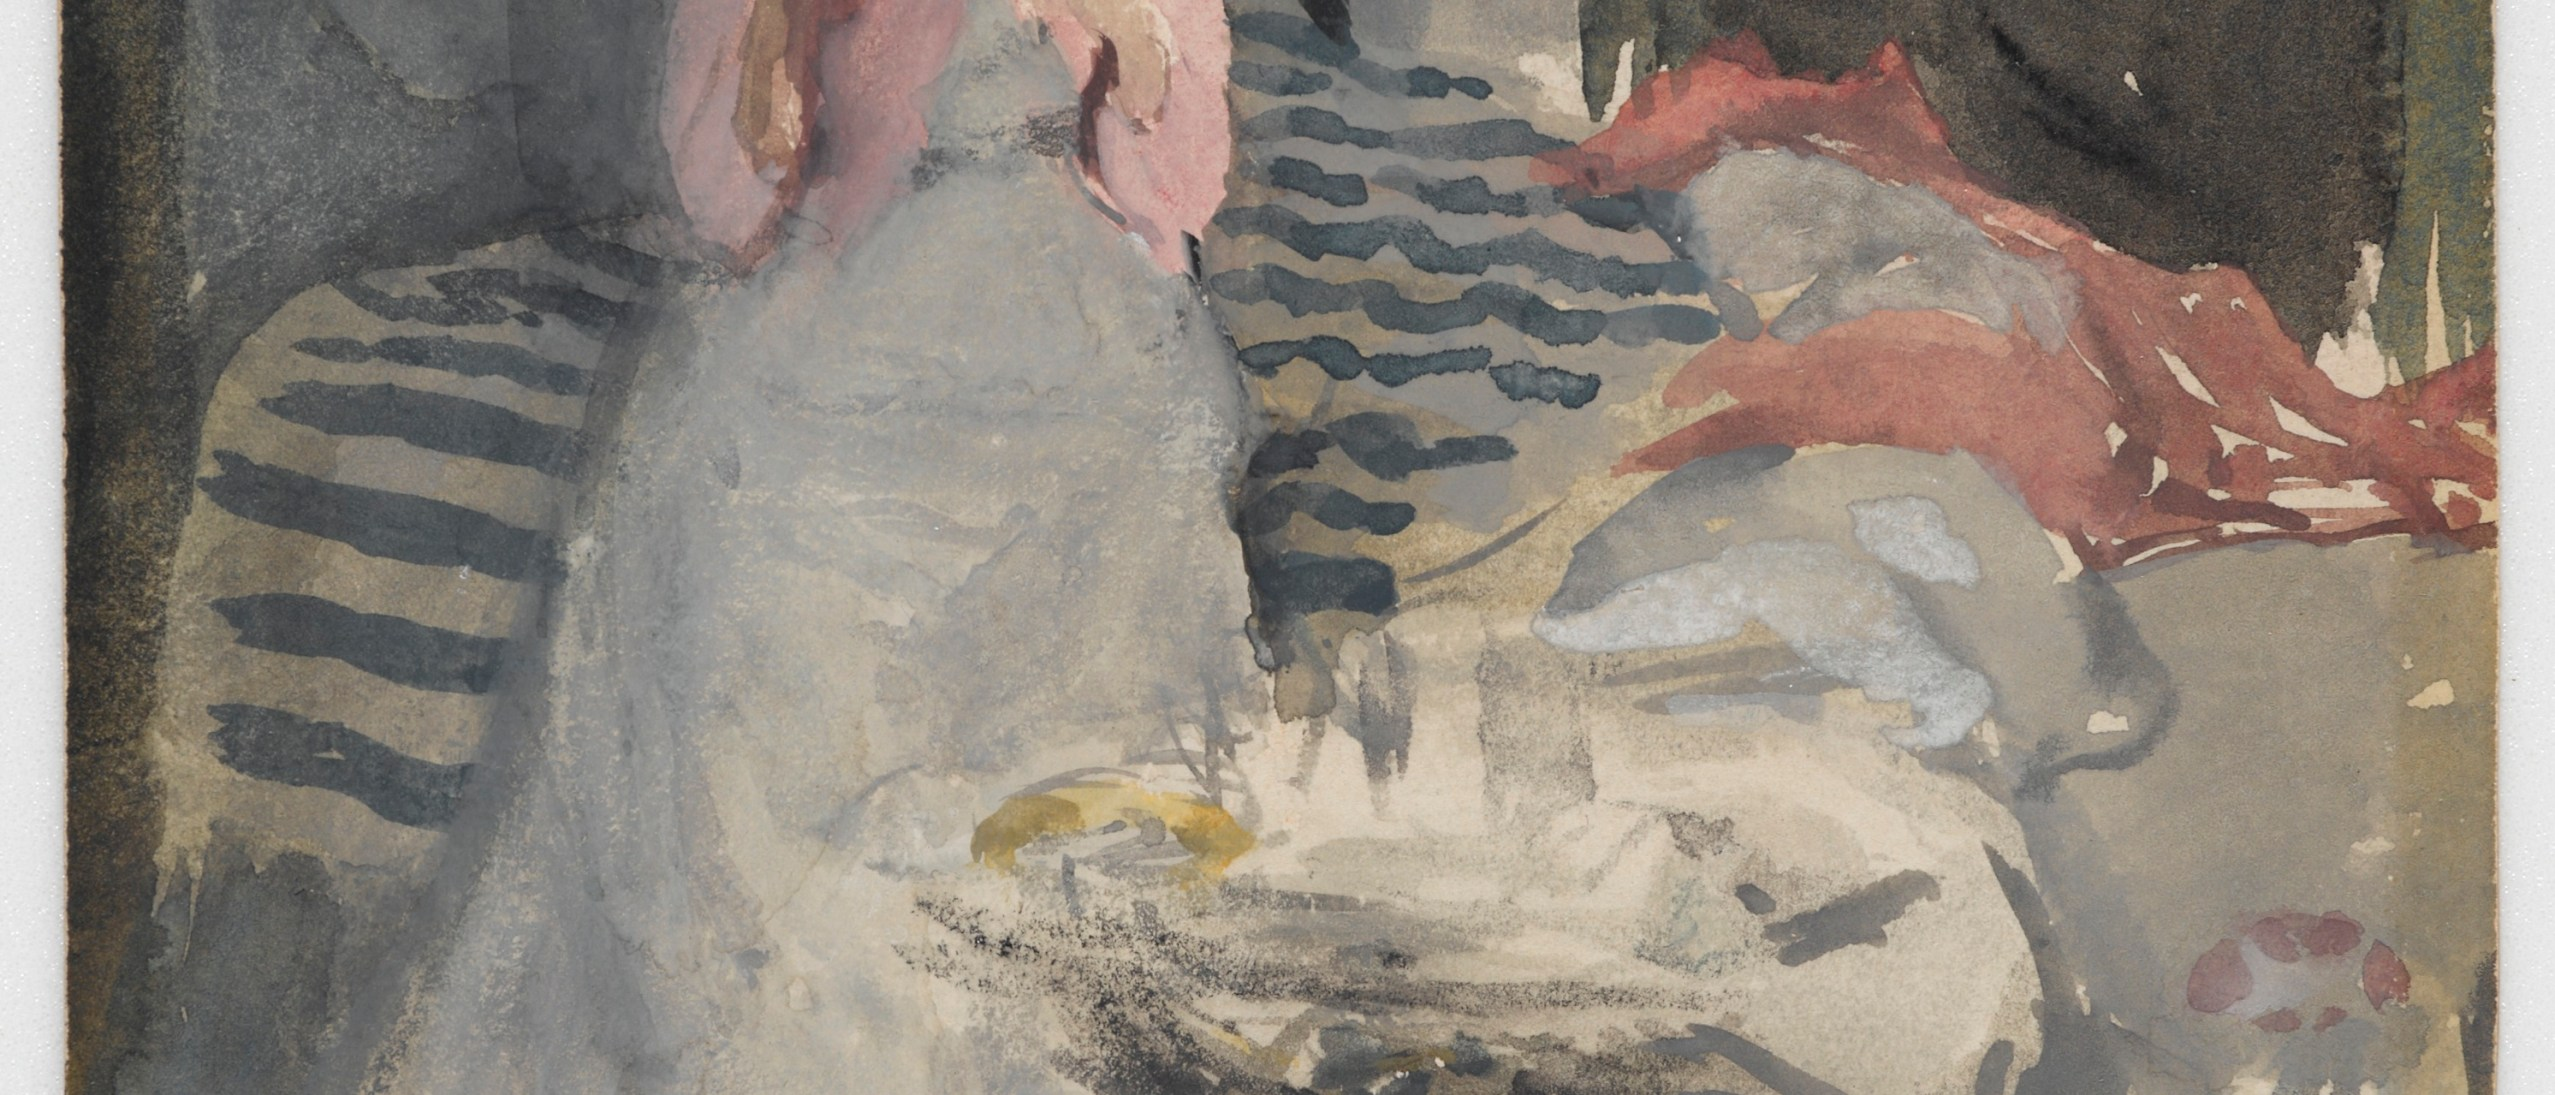 watercolor of a woman in a dress seated on the edge of a bed, reading a book. there is a round side table next to her